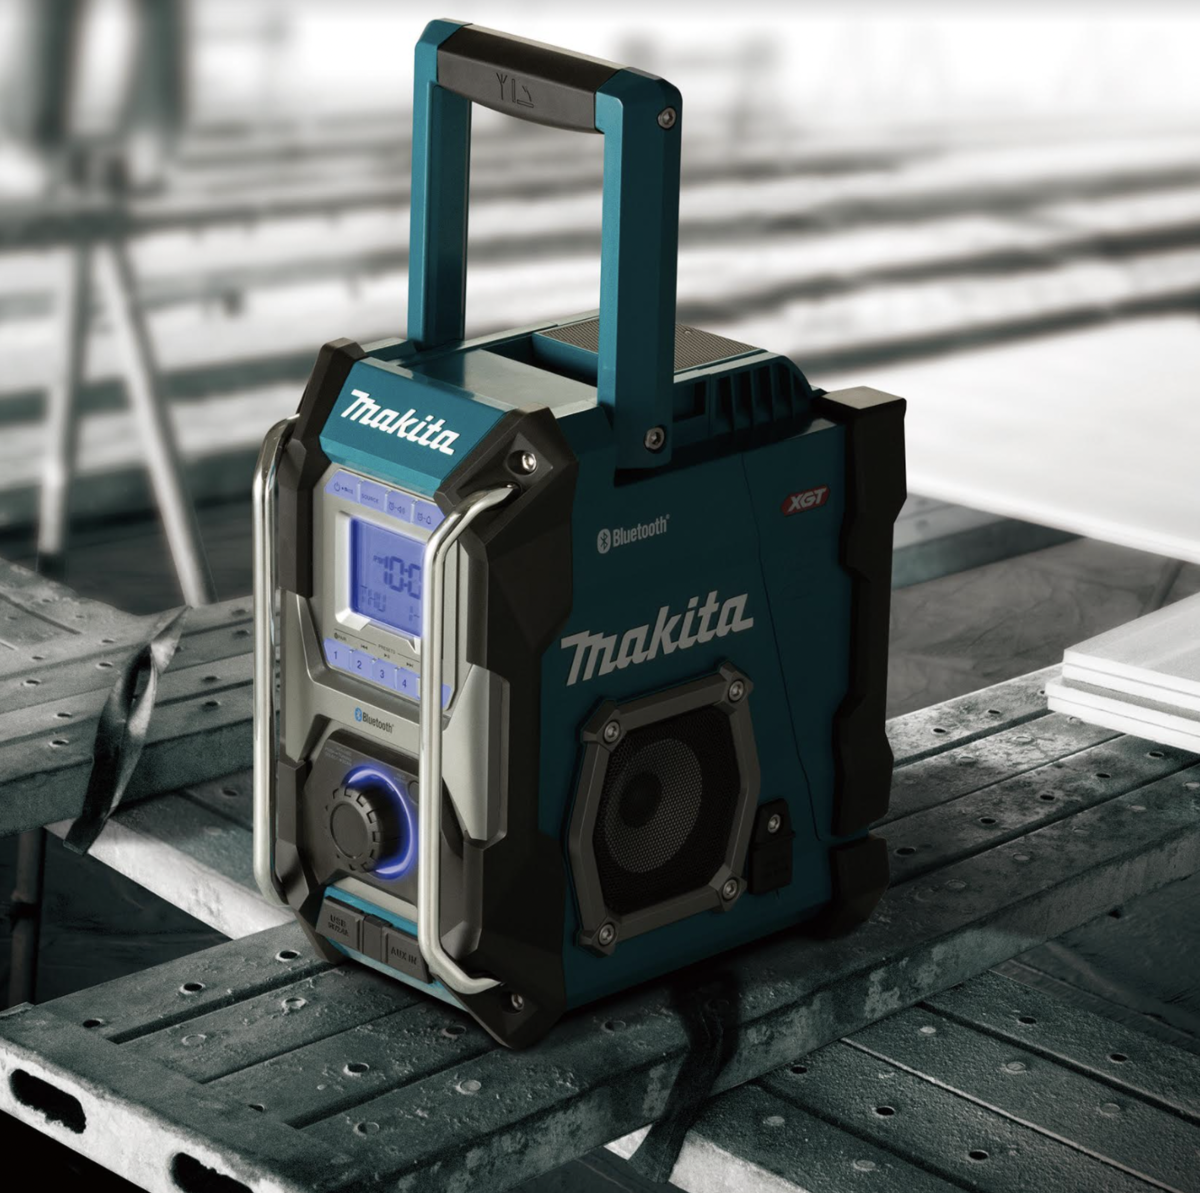 MAKITA LAUNCHES LATEST PROMOTION FOR END USERS WITH A FREE XGT 40VMAX RADIO